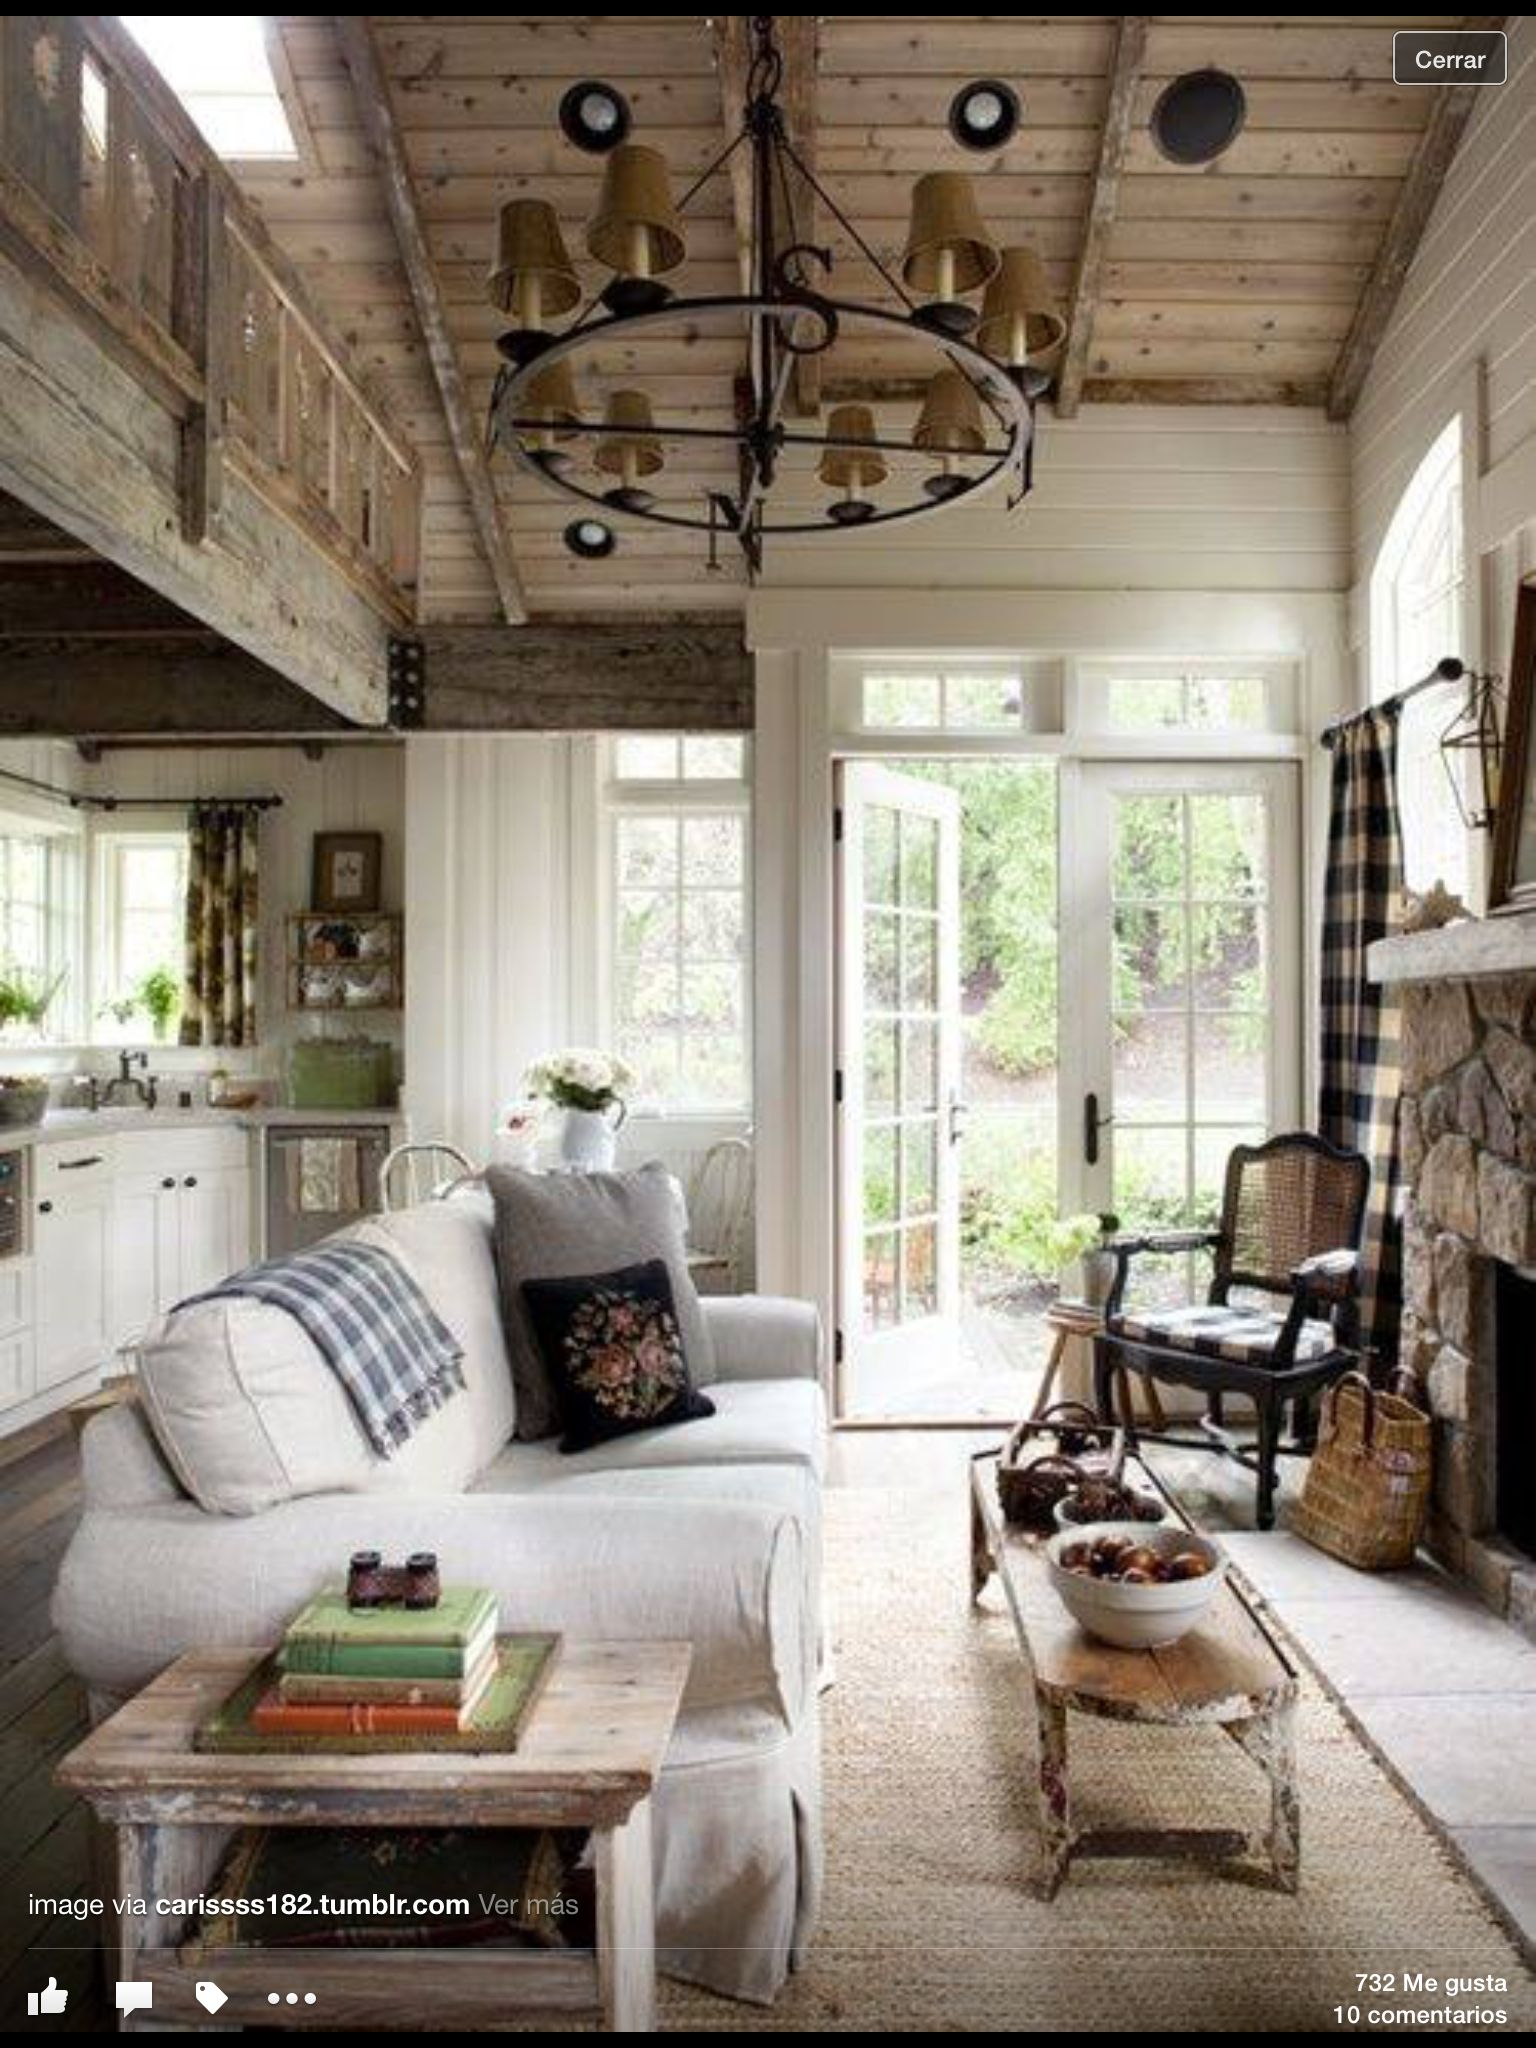 ways decor hotel ideas cottage living also room dining kitchen interiors to charming cozy style english create livings for your enjoyable country table ing